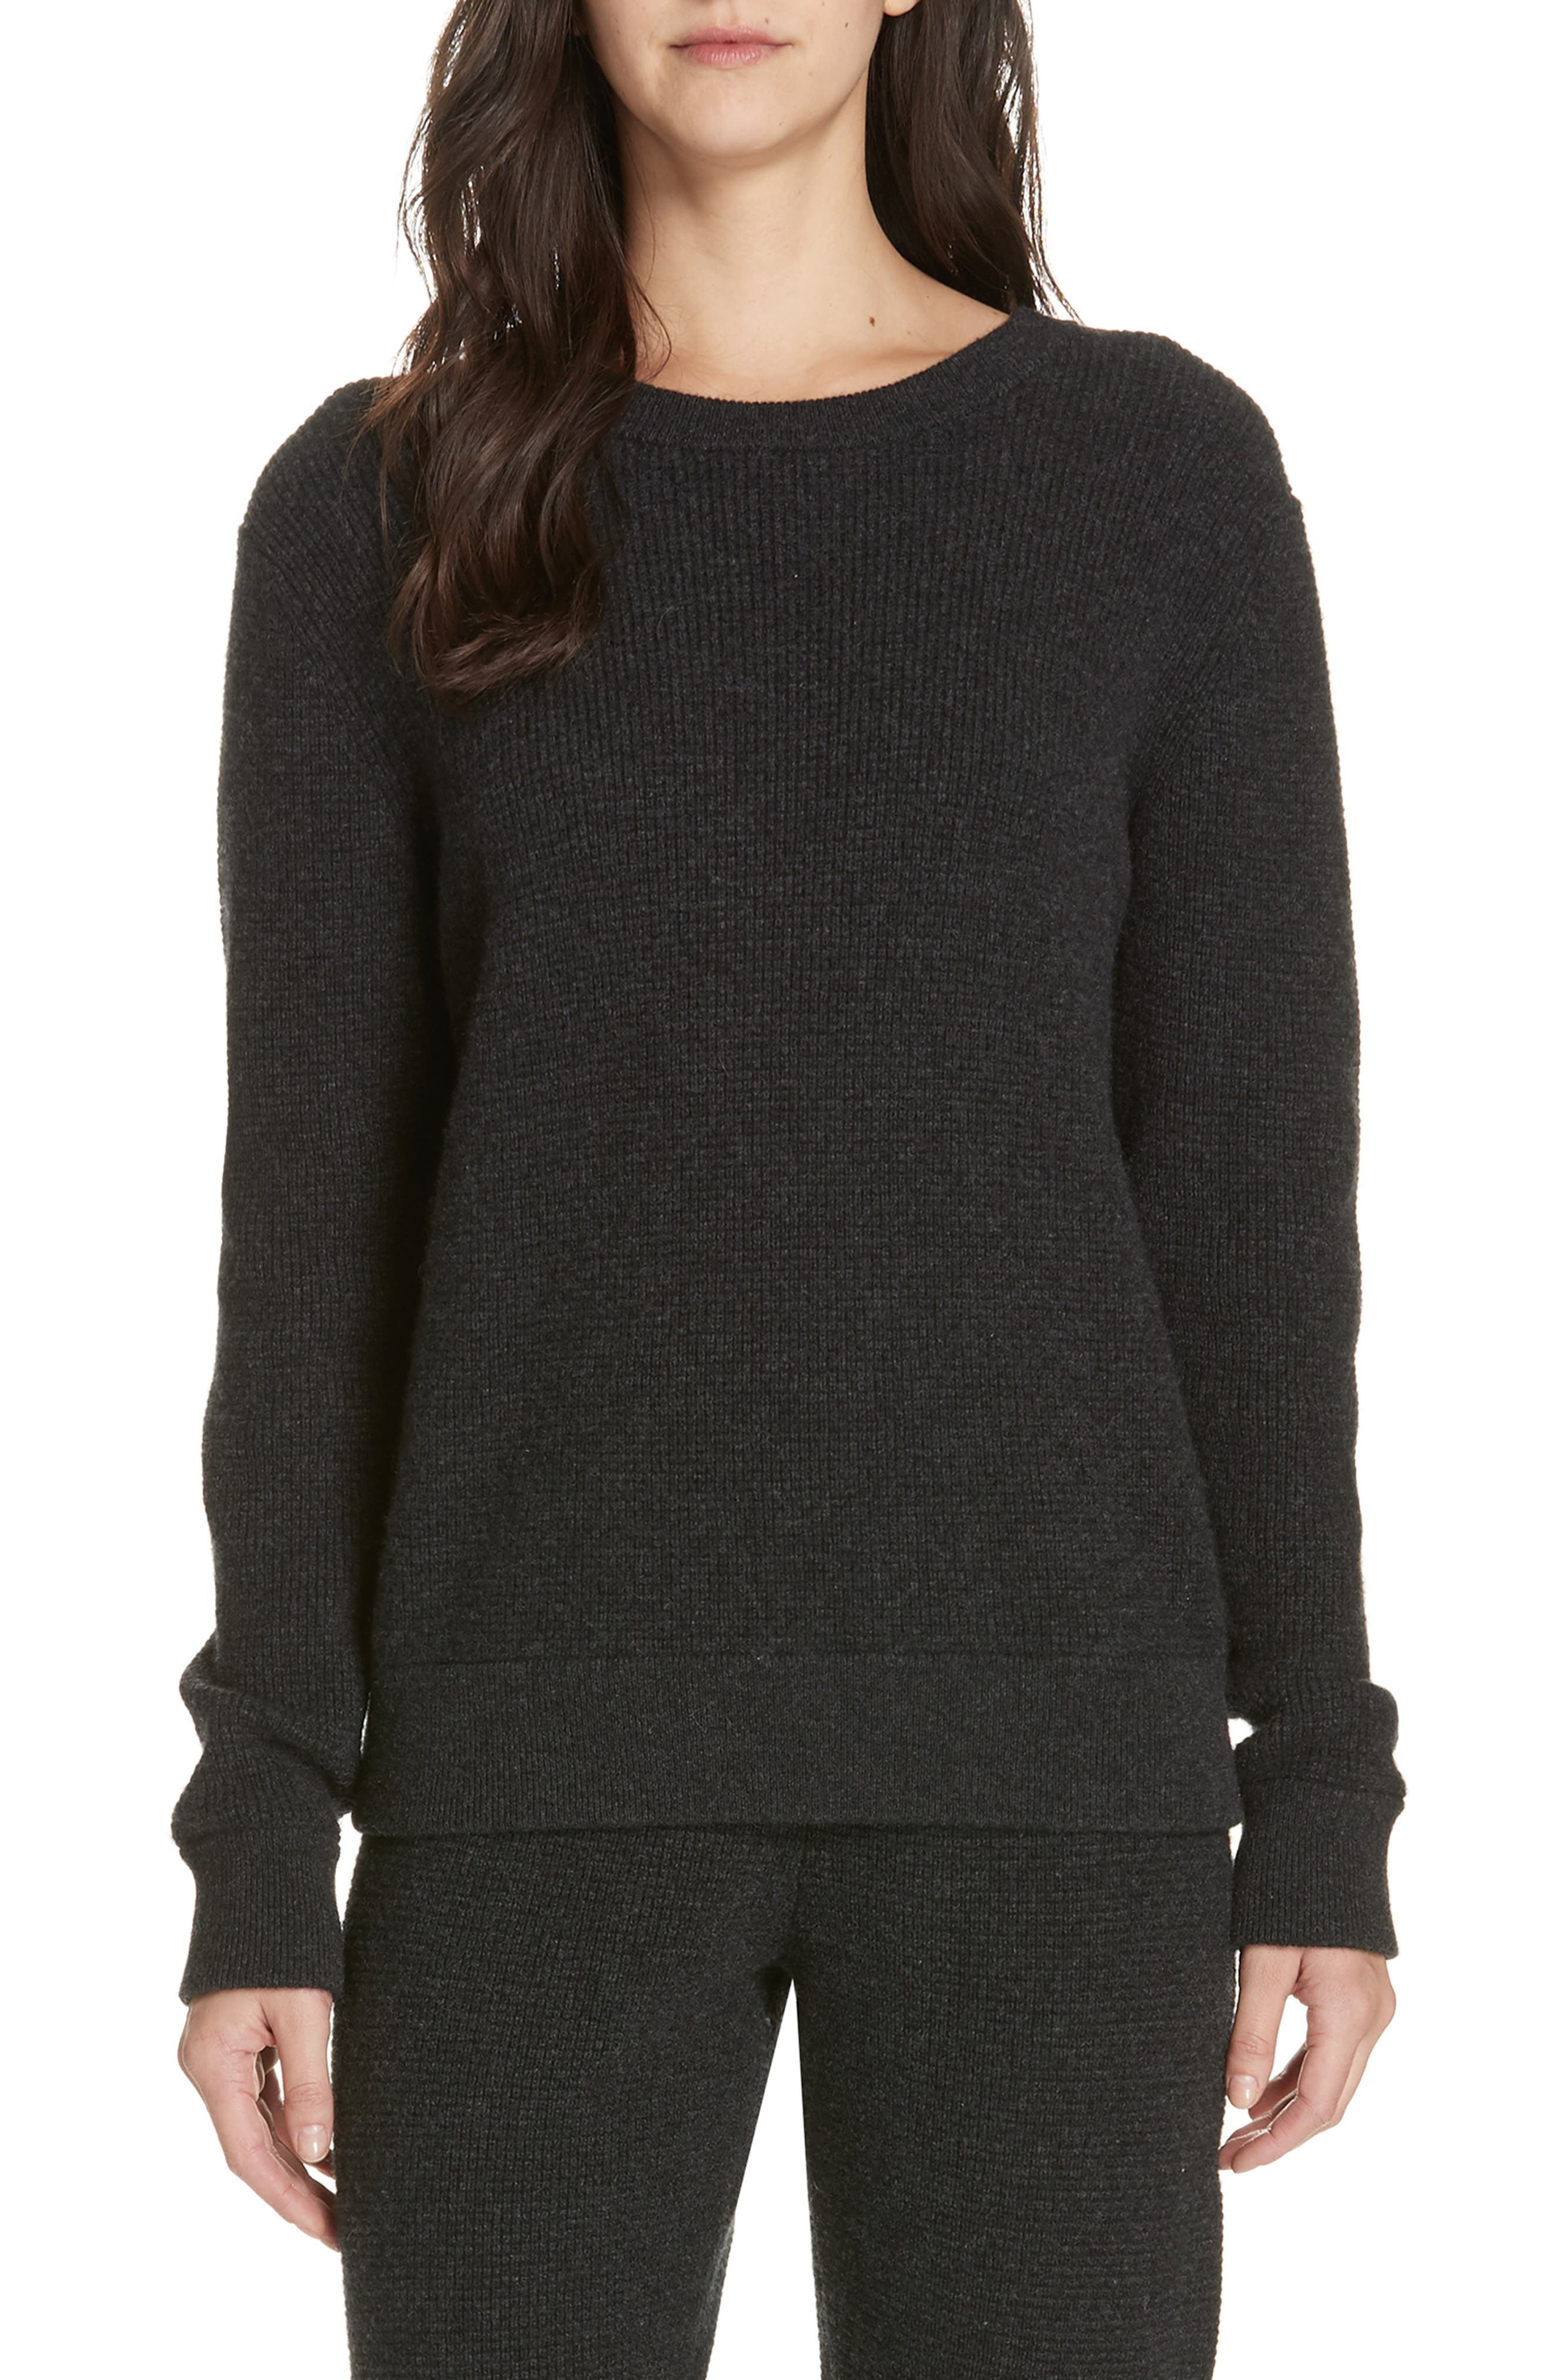 JENNI KAYNE Thermal Cashmere Blend Sweater in Charcoal